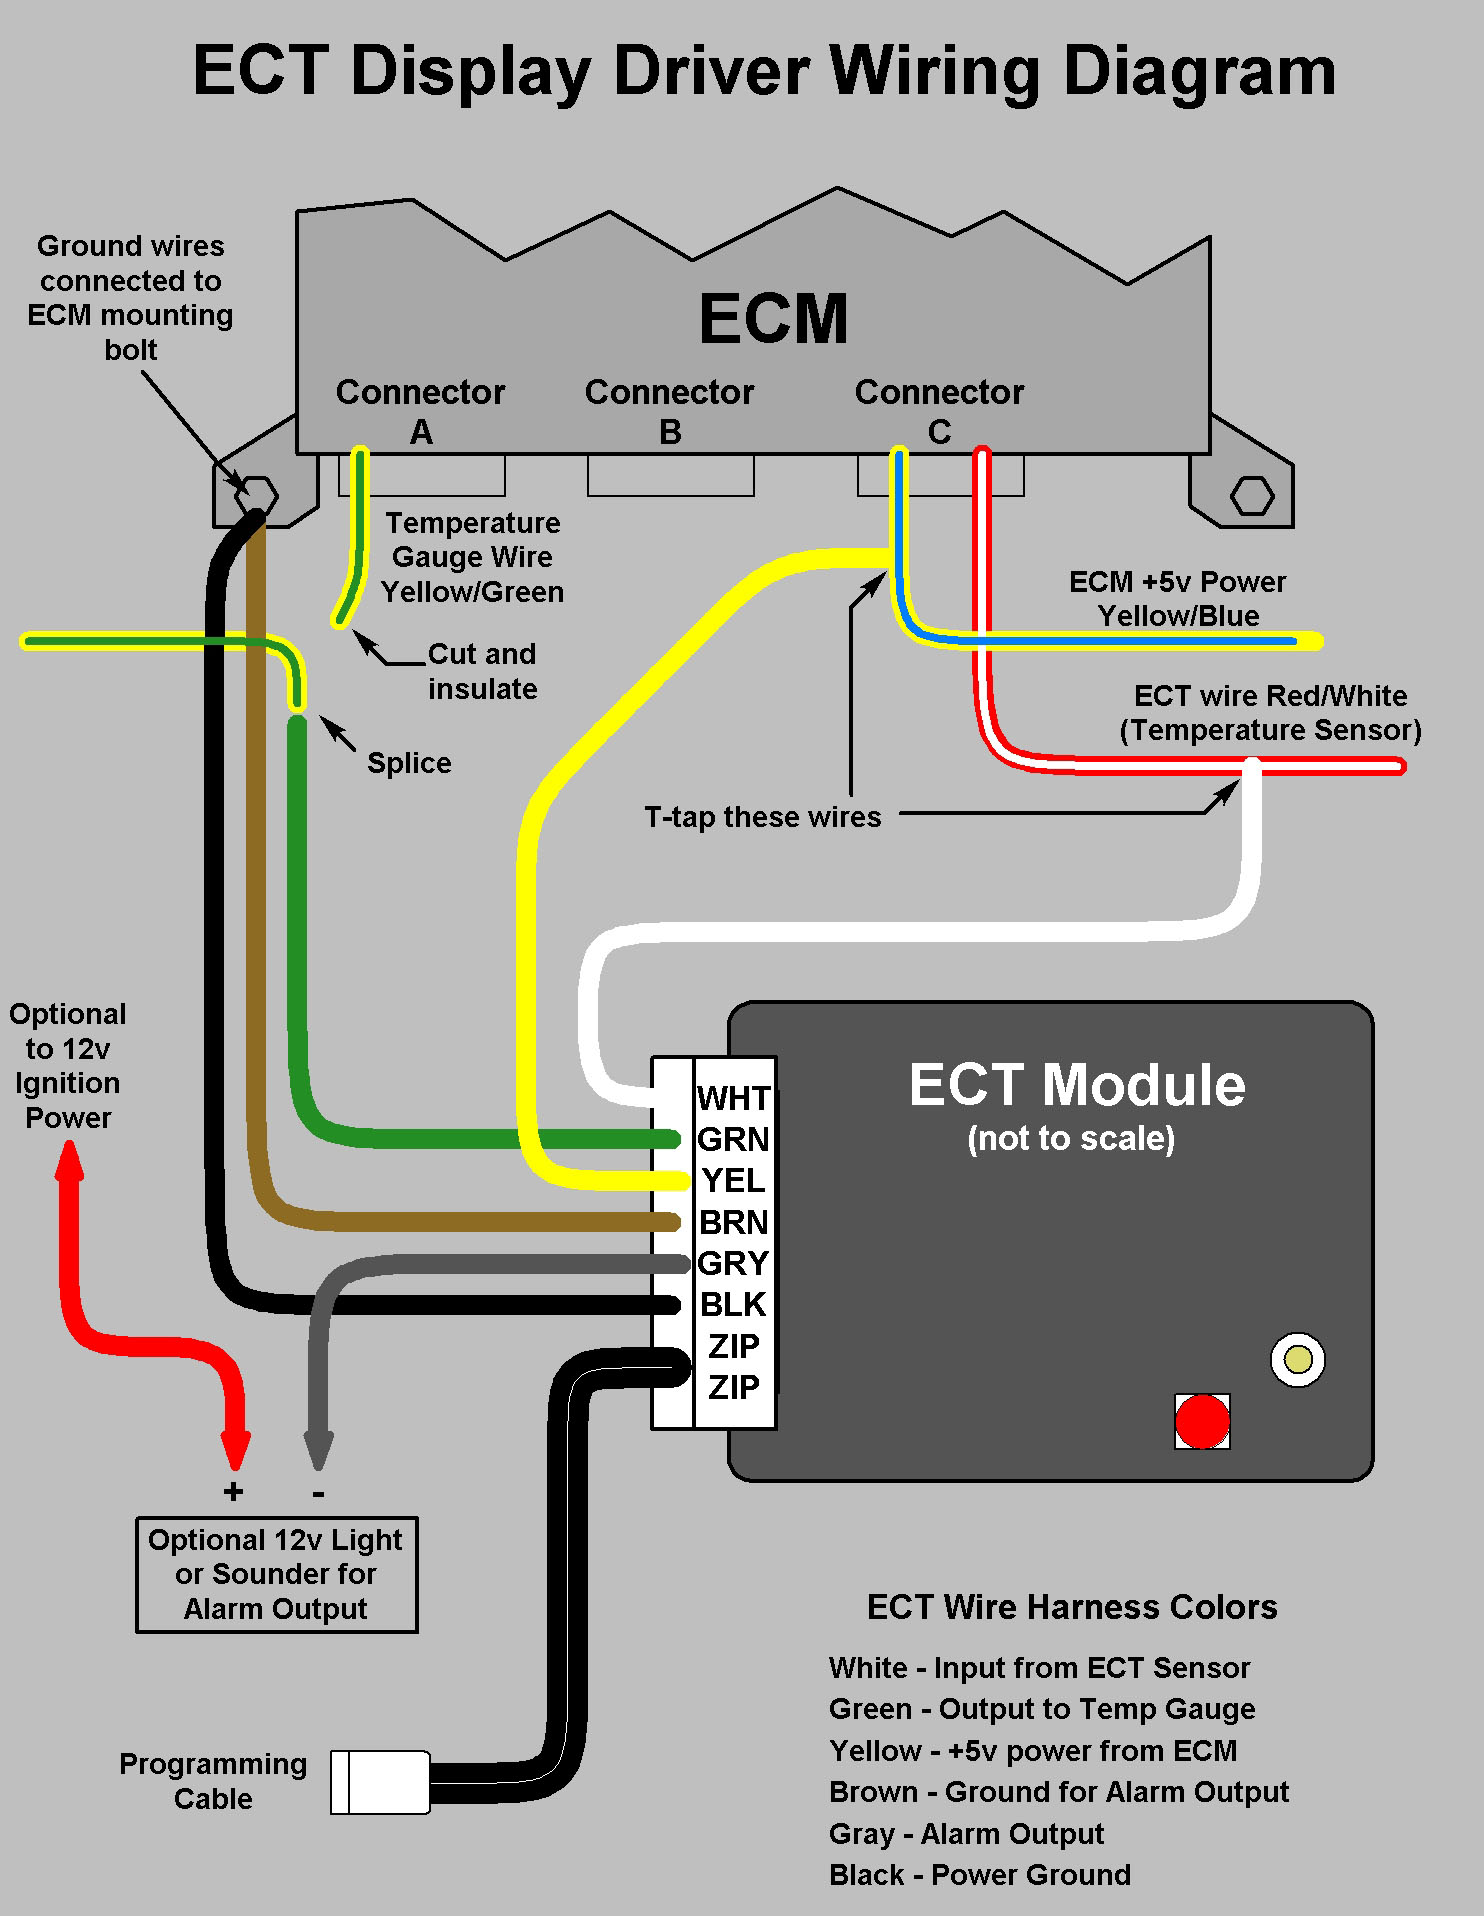 ECT wiring diagram aem ems 4 wiring diagram aem ems fox body mustangs \u2022 free wiring ems stinger wiring diagram at mifinder.co